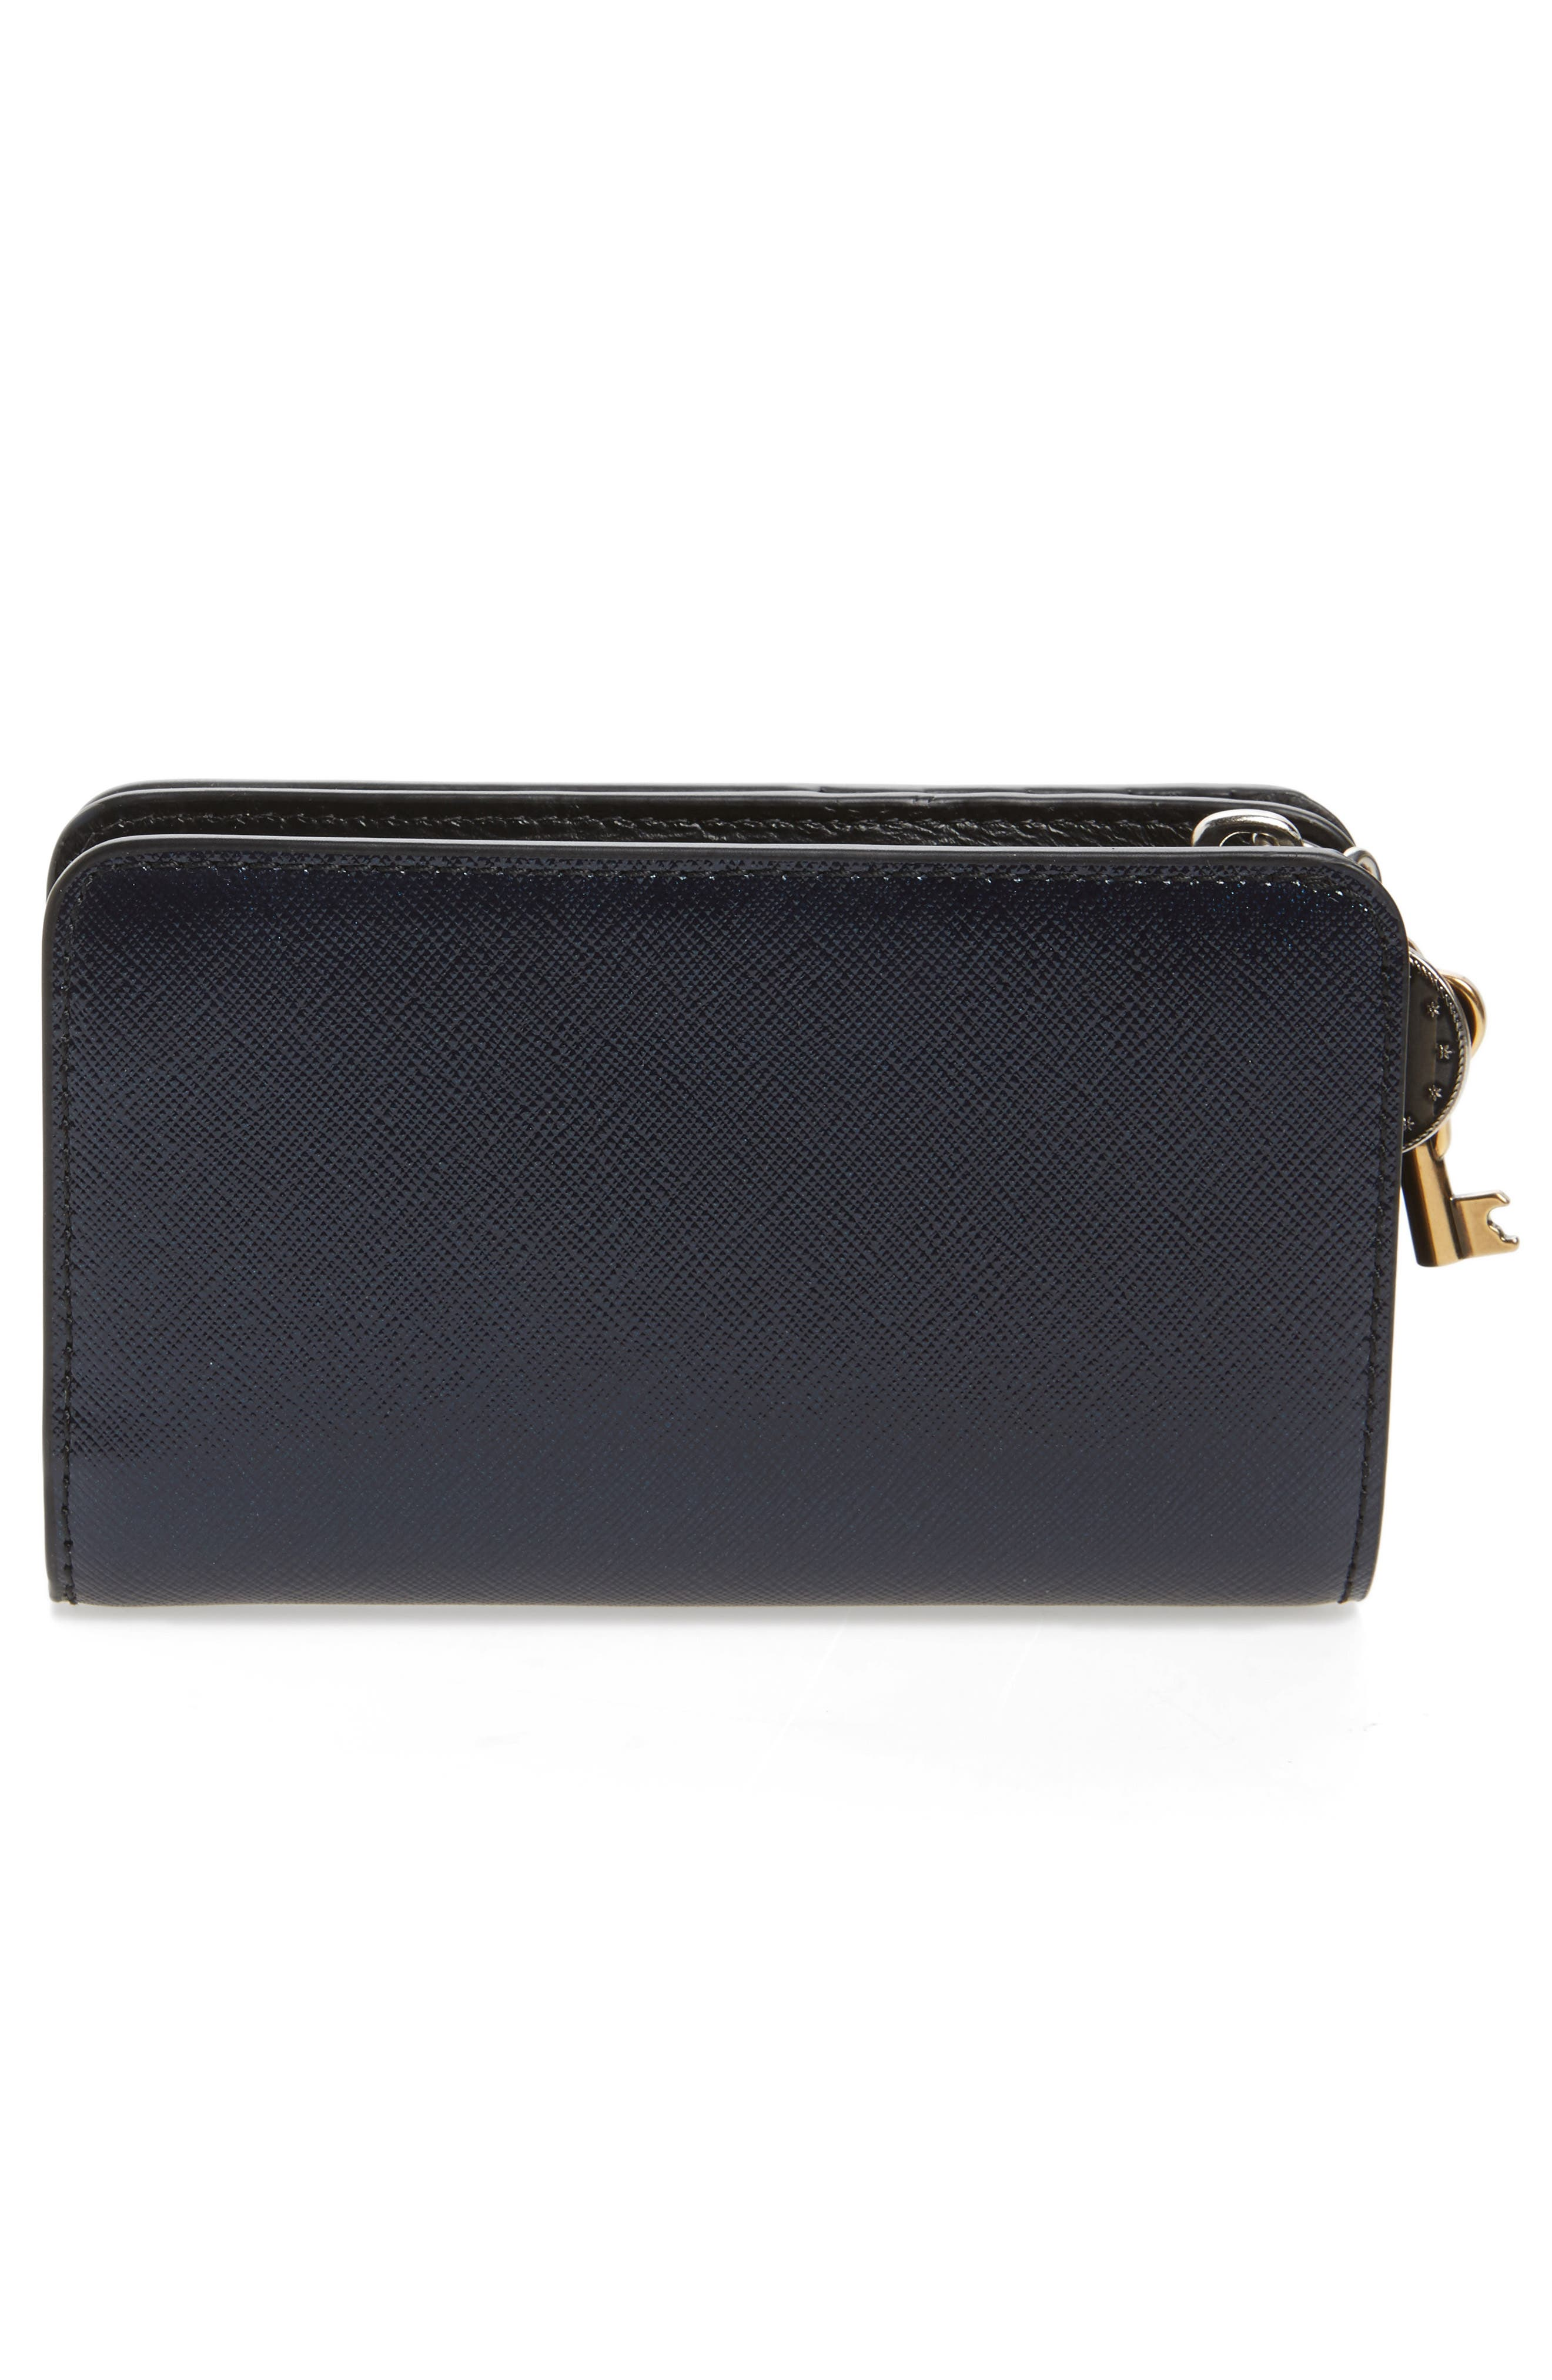 Alternate Image 3  - MARC JACOBS Saffiano Leather Compact Wallet